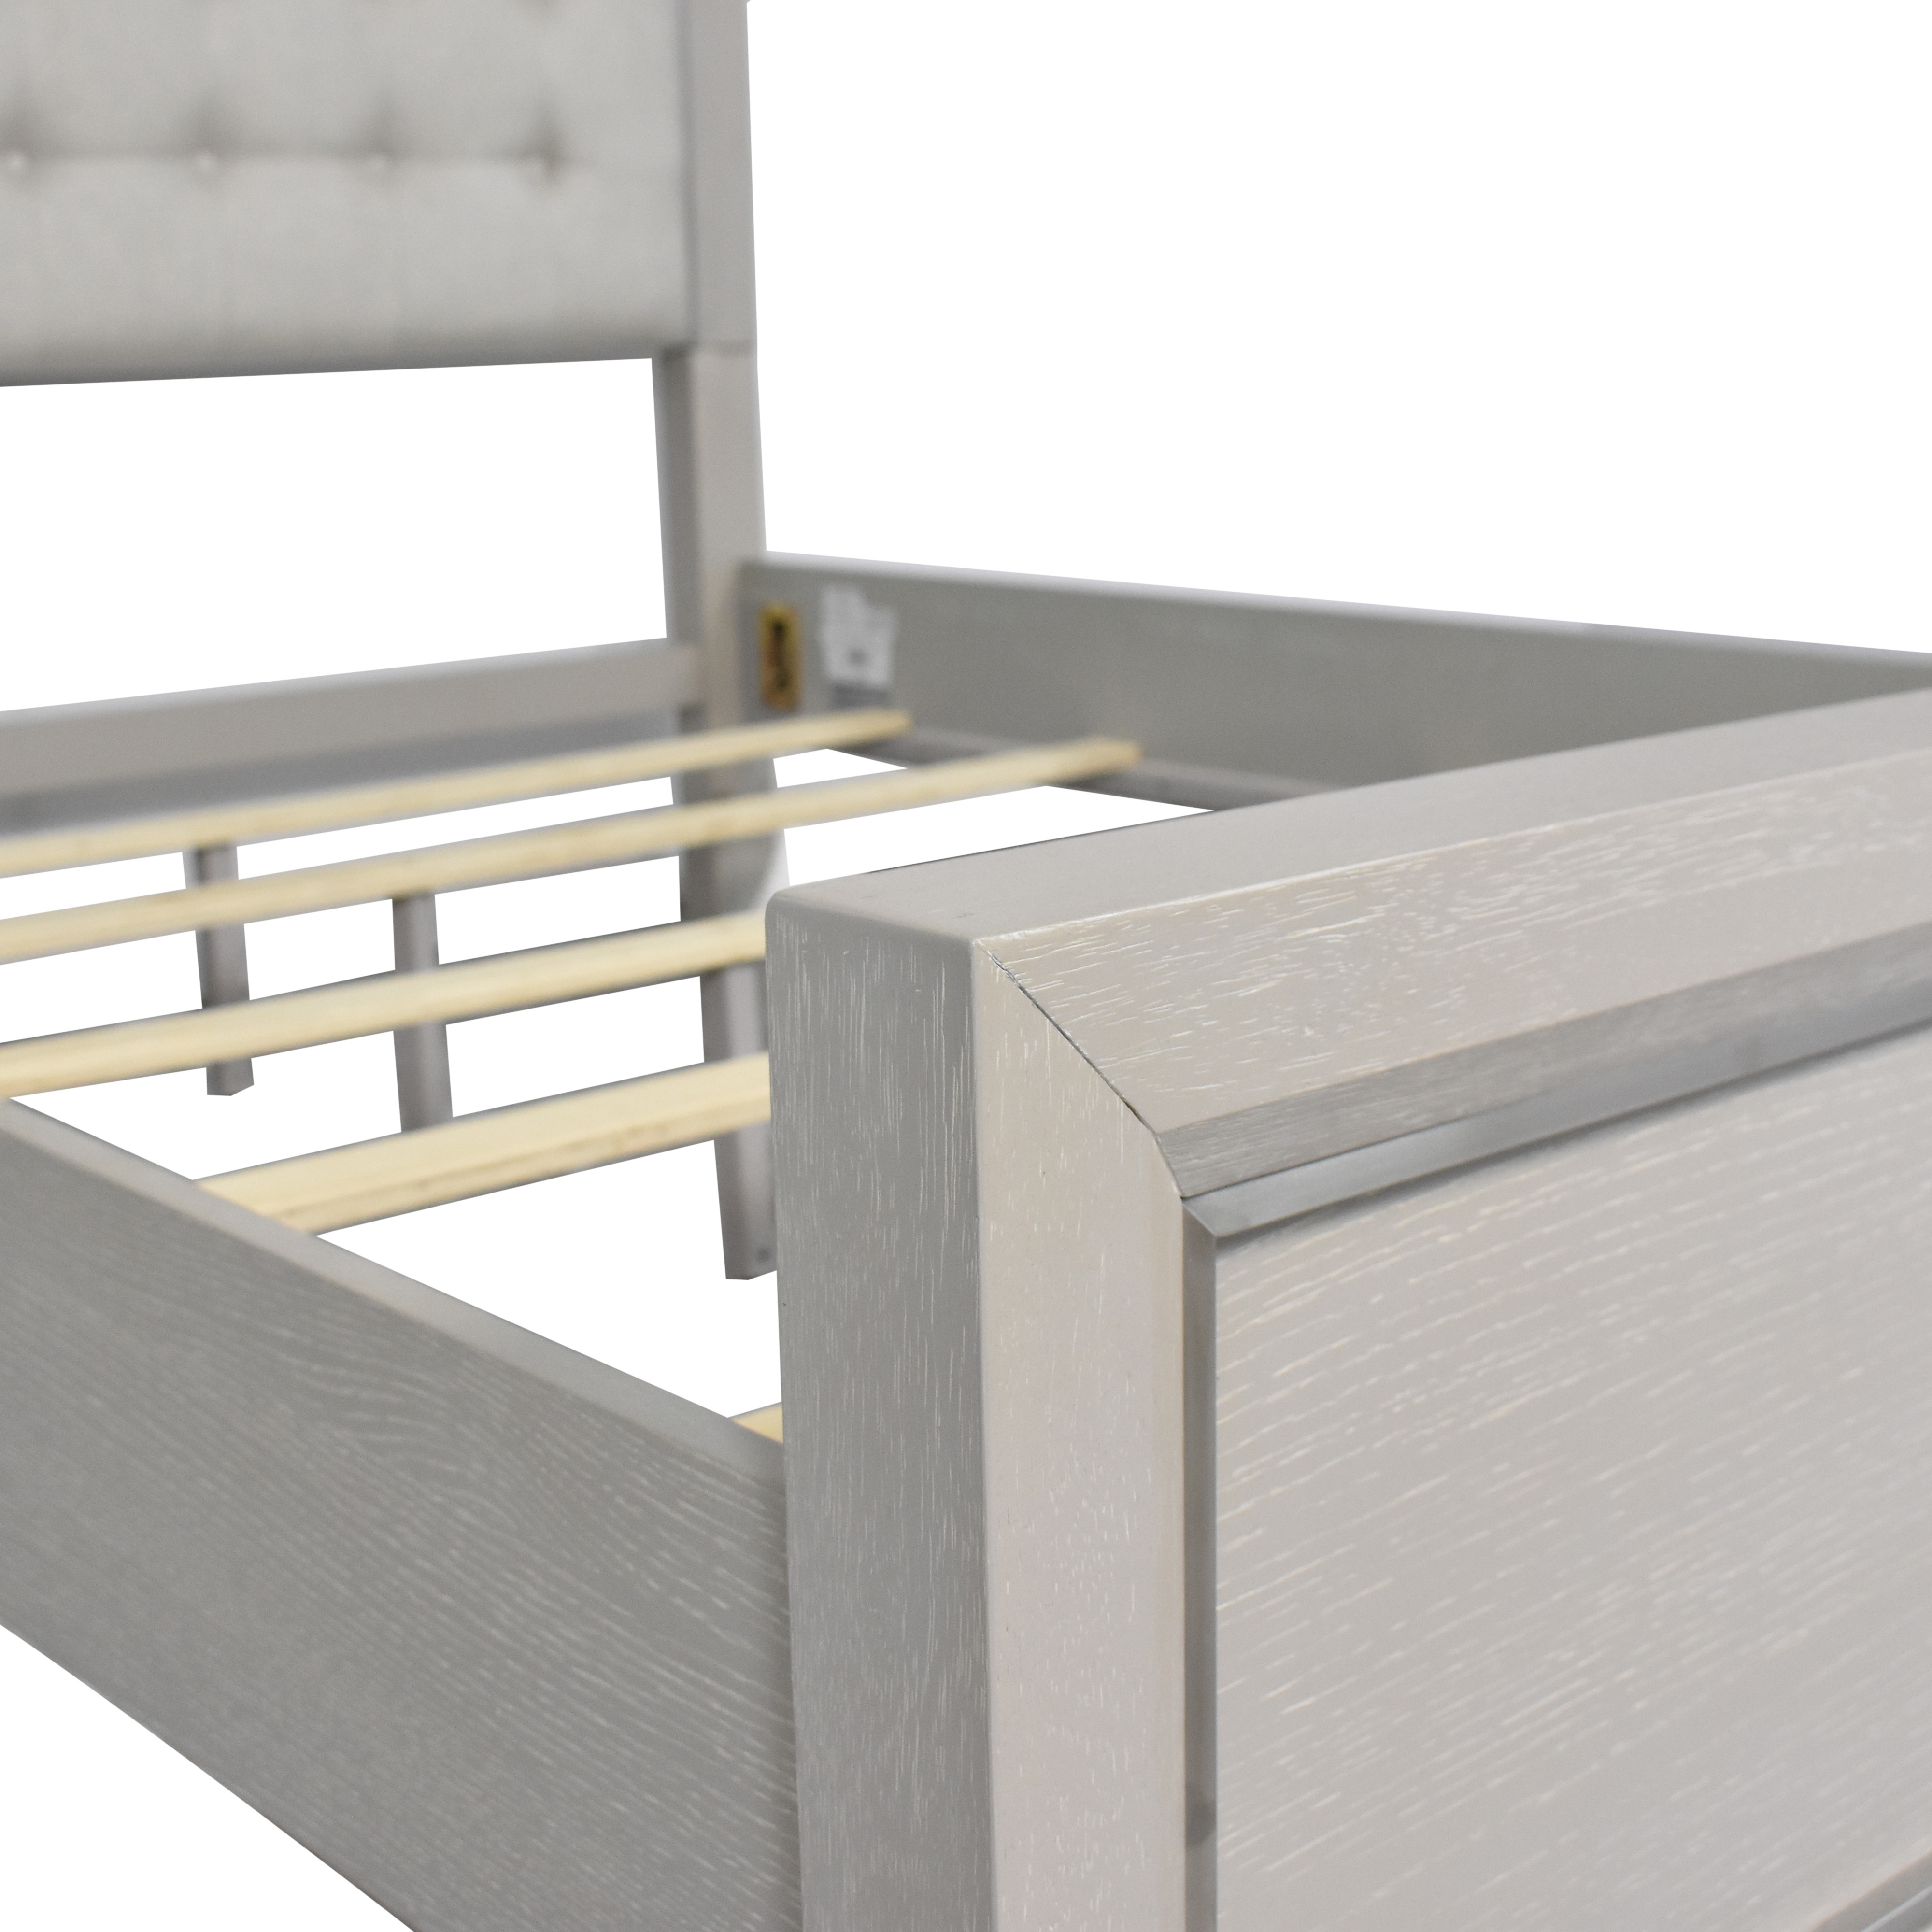 Macy's Macy's Kelly Ripa Kendall Queen Bed for sale